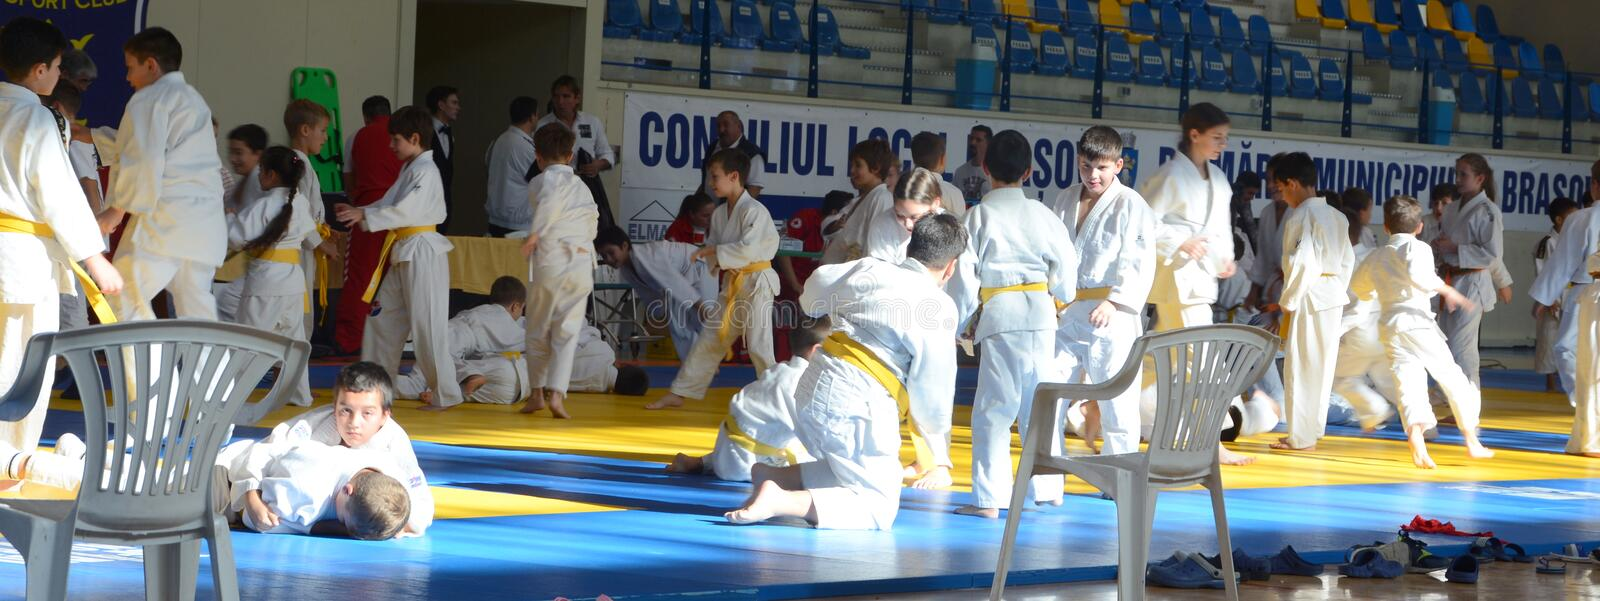 Kids Judo Cup 2016. The National contest Kids Judo Cup 2016 in Brasov royalty free stock photography